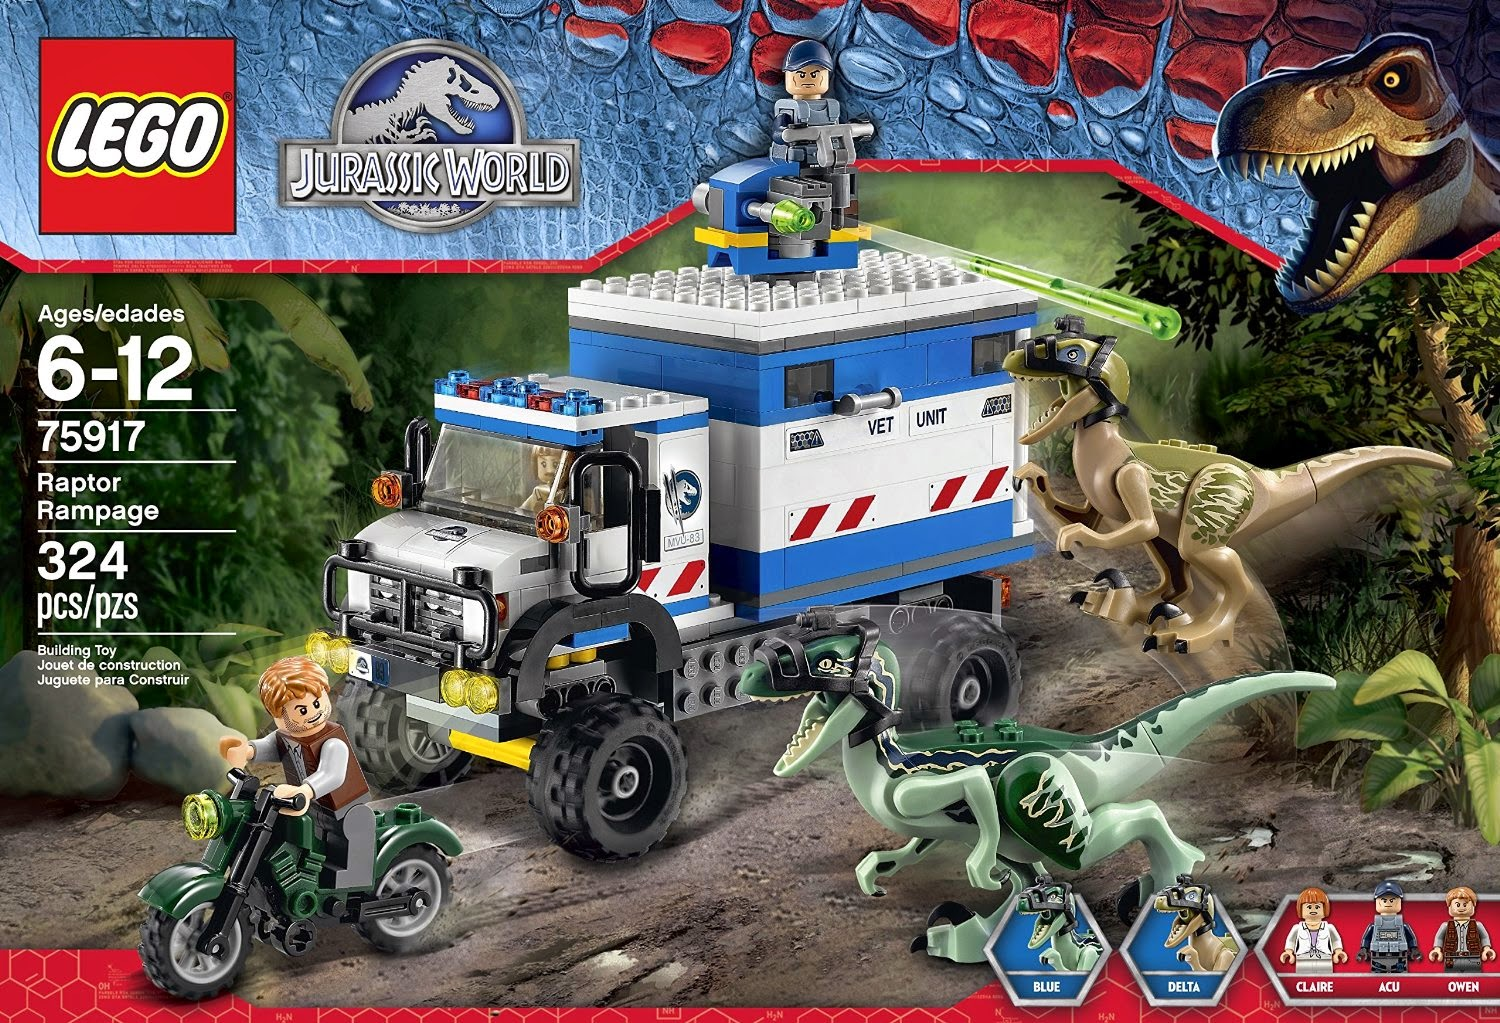 The minifigure collector lego jurassic park and dino sets - Jurasic park lego ...